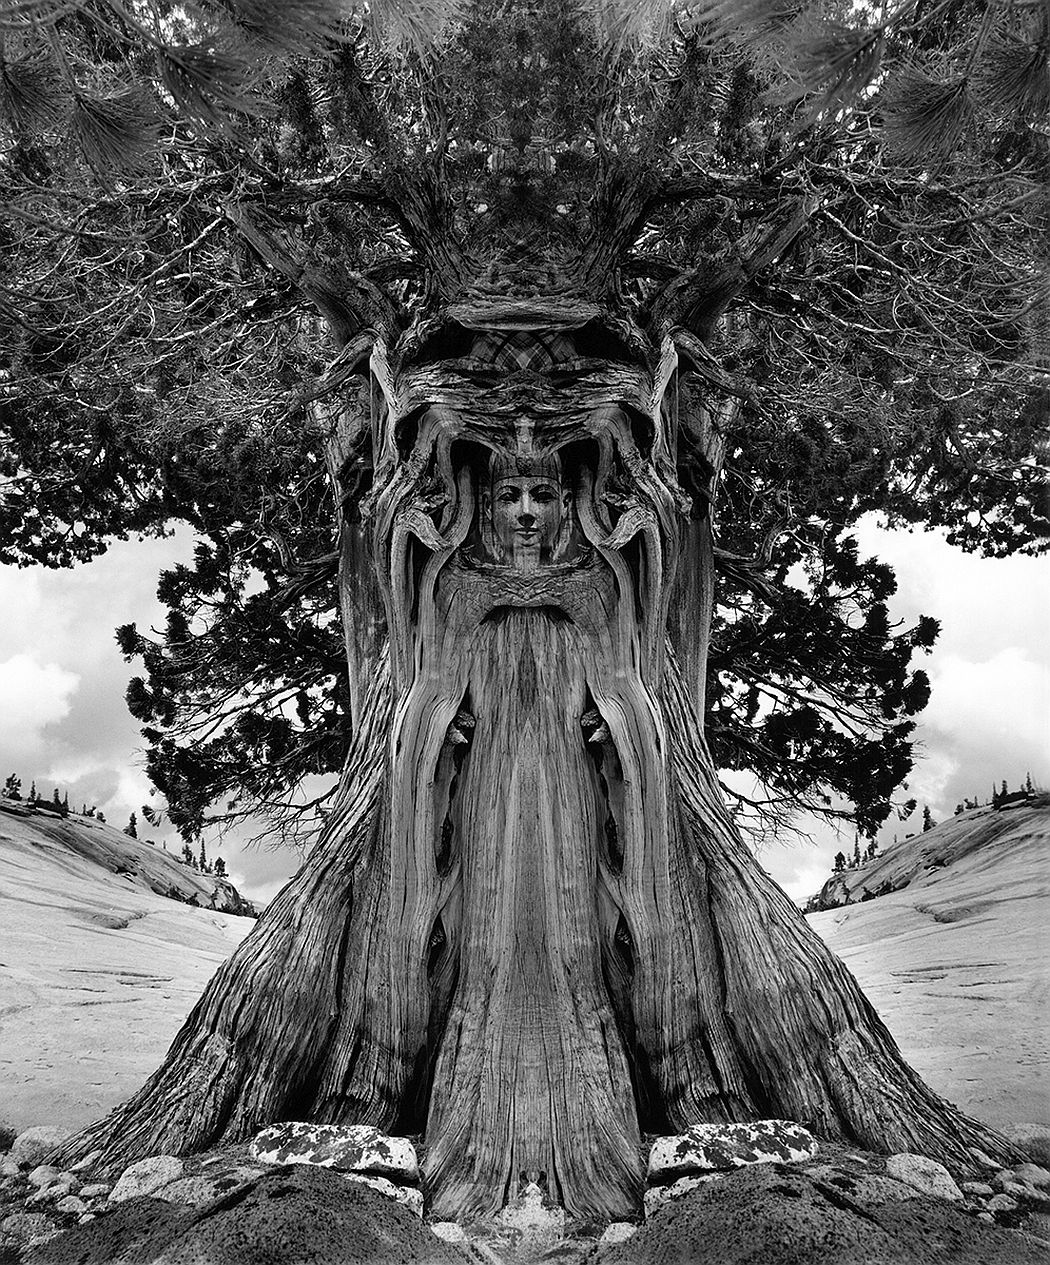 jerry-uelsmann-undiscovered-self-08